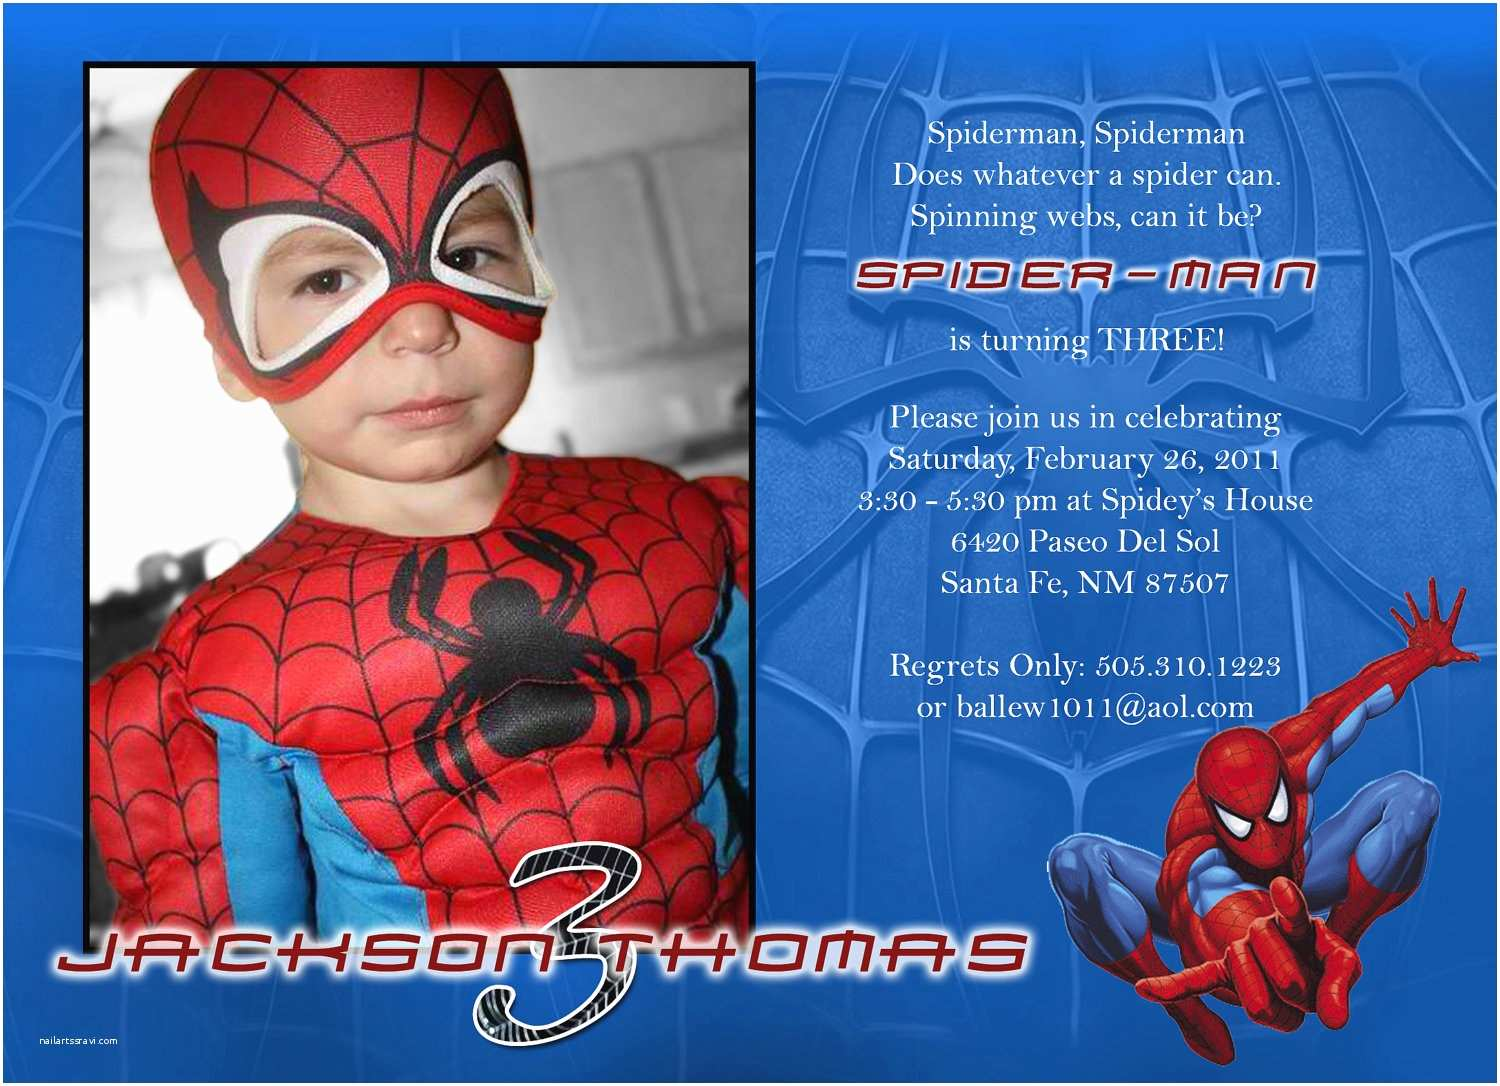 image about Printable Spiderman Invitations called Spiderman Get together Invites No cost Printable - Letter